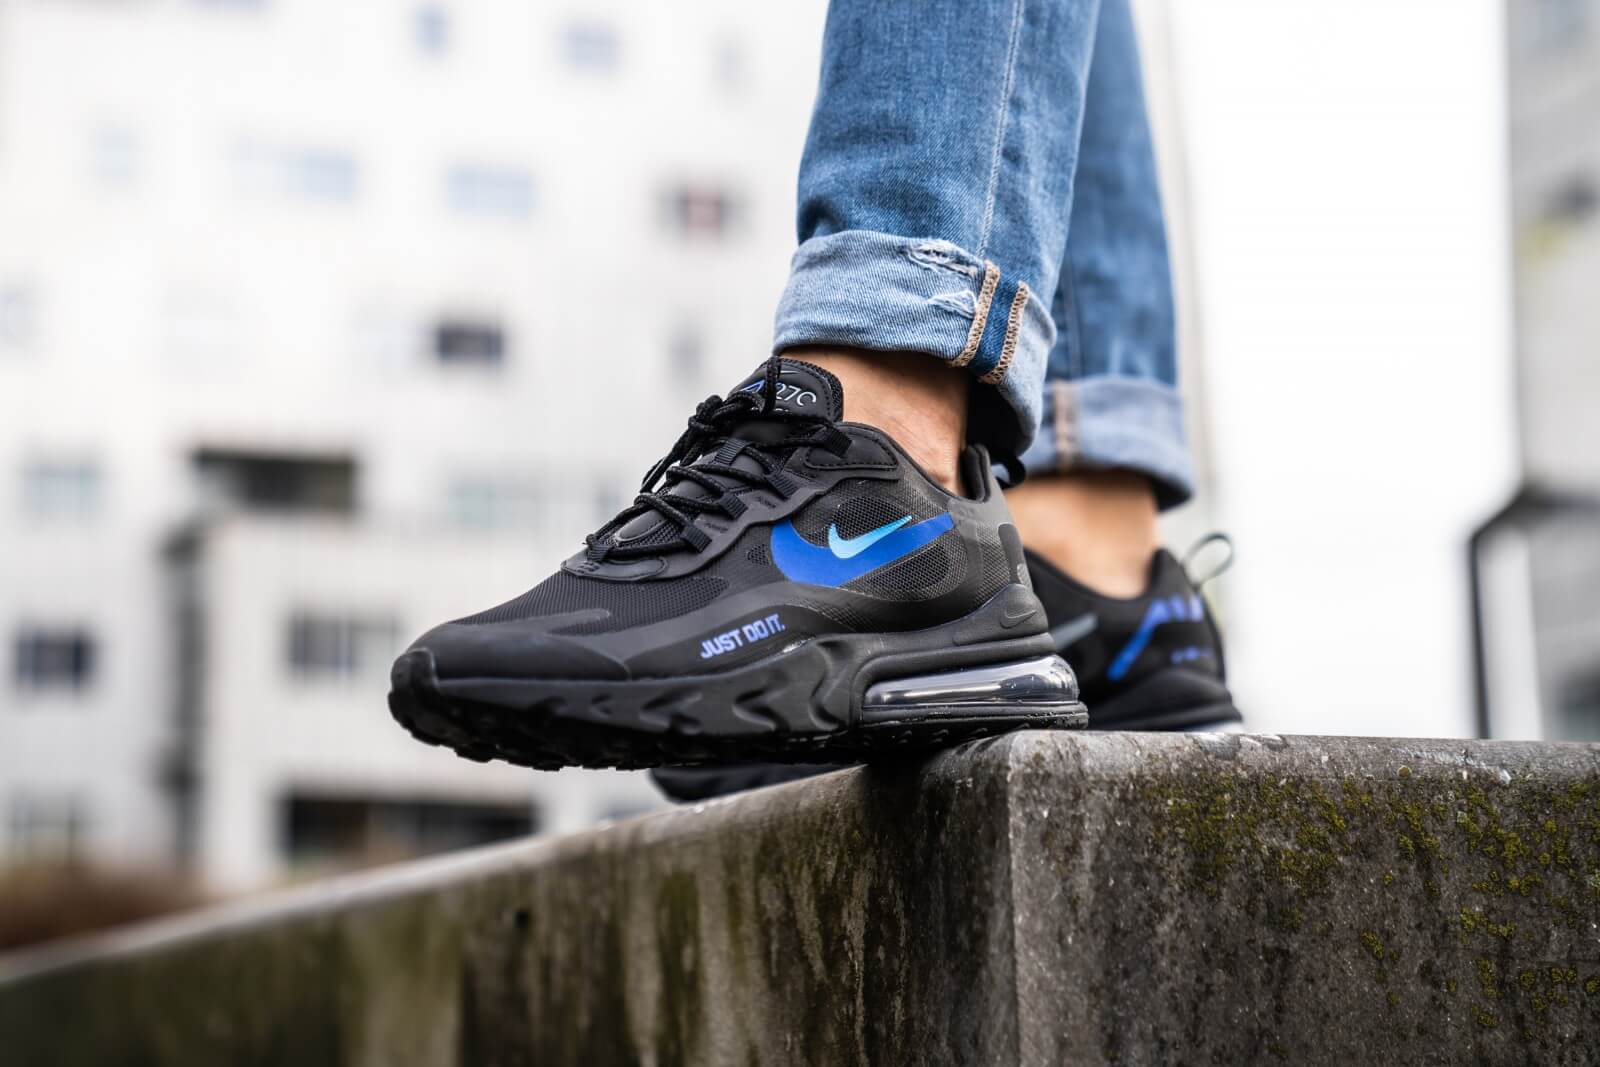 Médico Oponerse a Alérgico  Nike Air Max 270 React Black/Blue Hero-Hyper Royal - CT2203-001